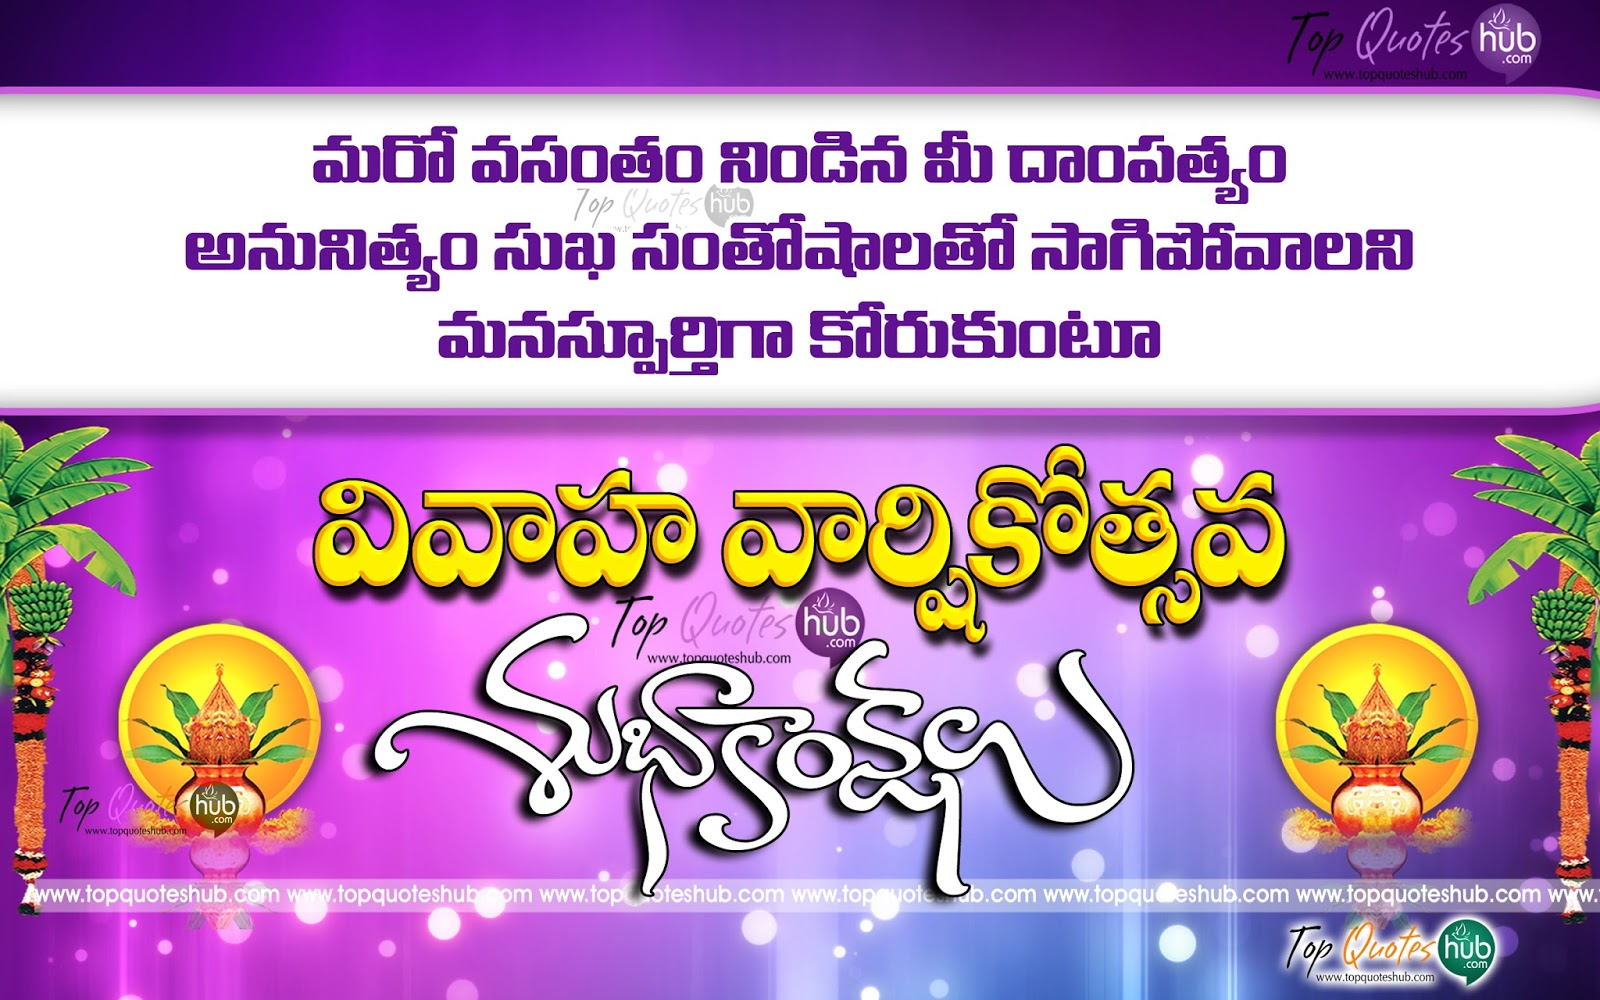 Happy Wedding Anniversary Telugu Wishes Quotes Hd Images